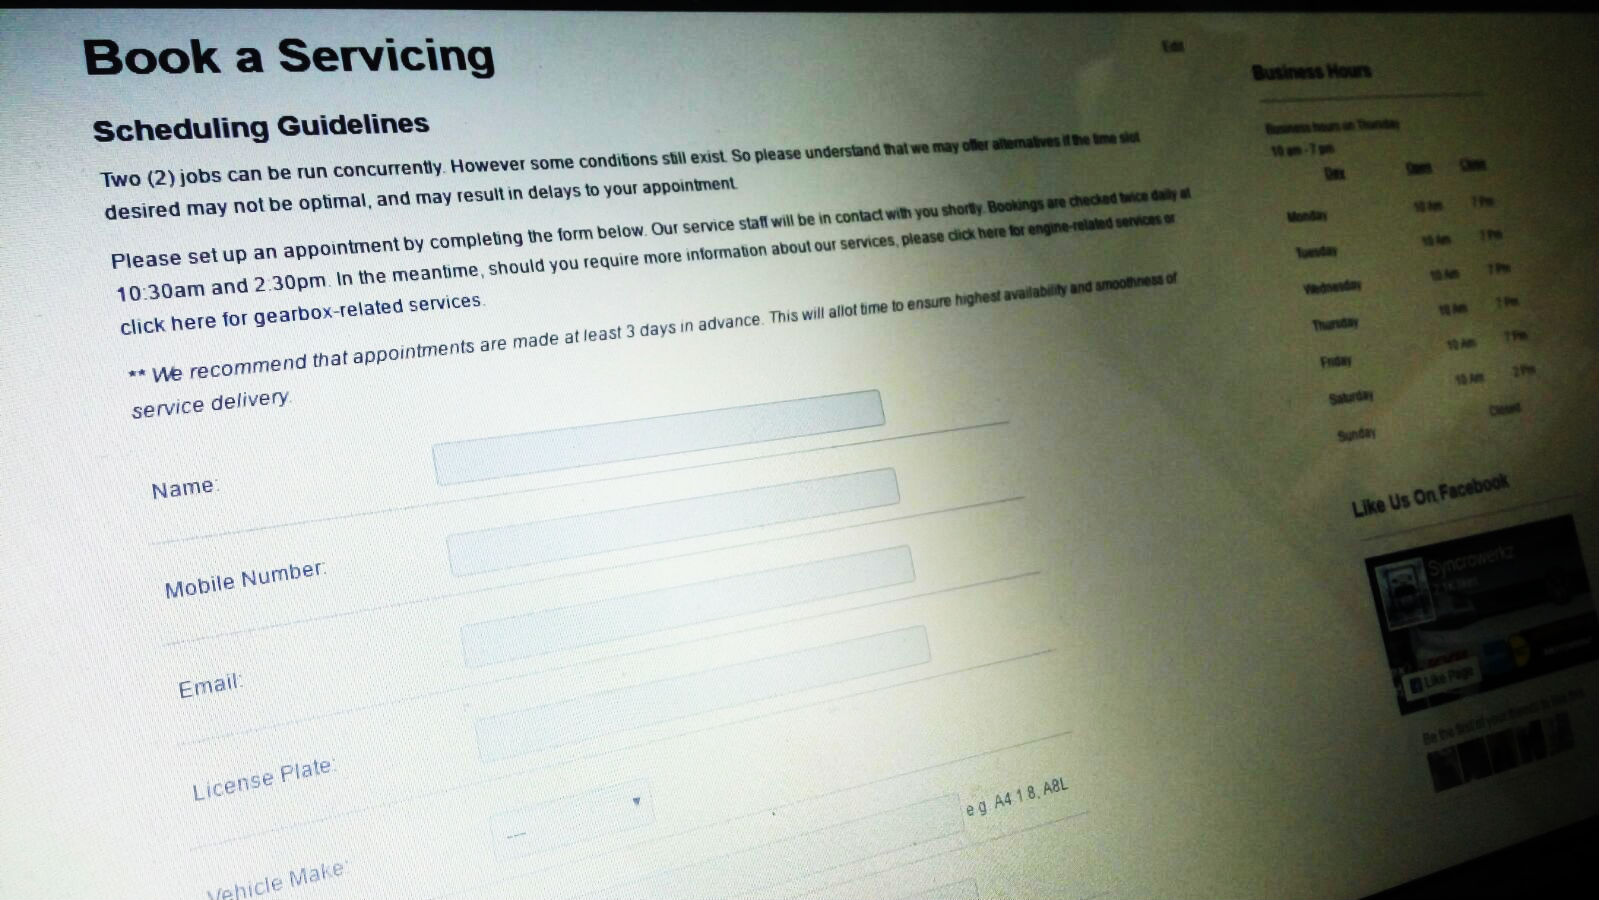 Syncrowerkz Appointment Form for Booking your servicing in